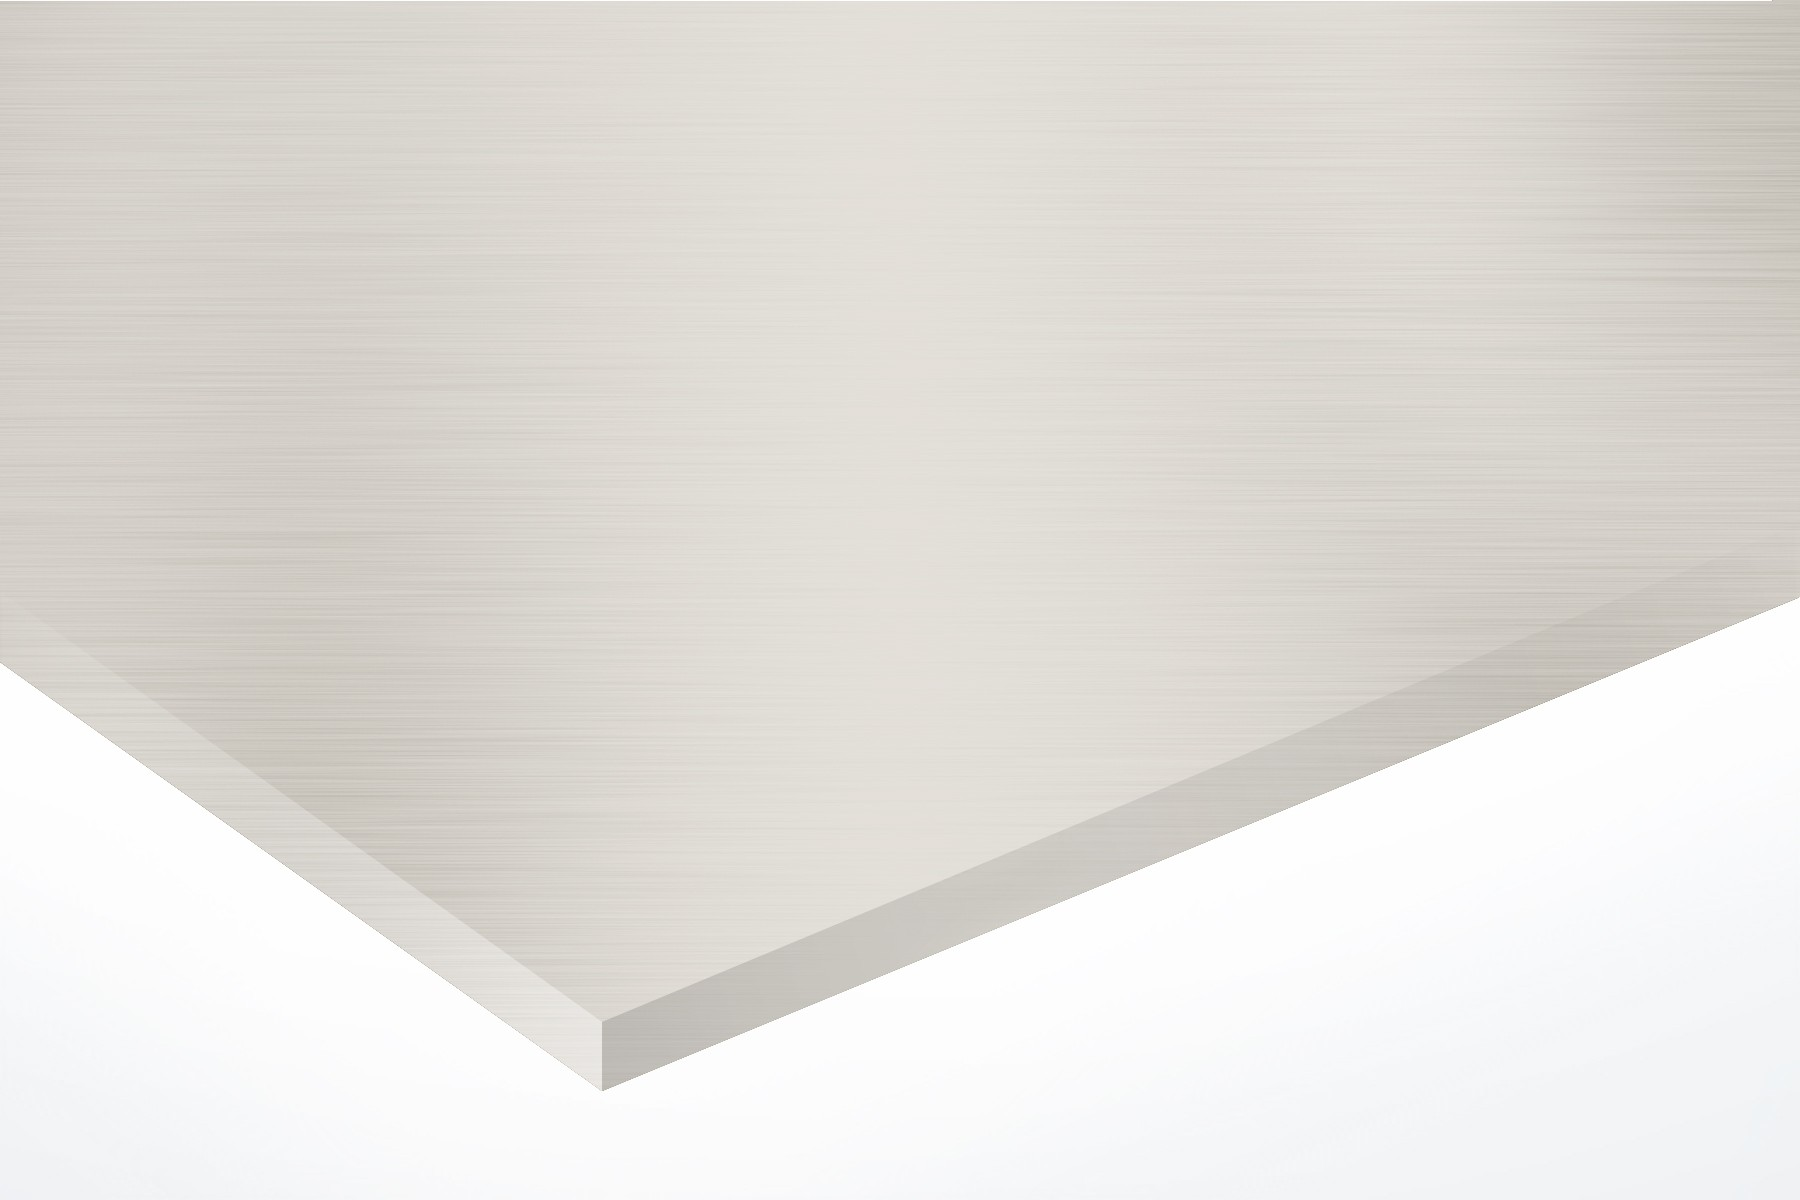 ALUMAMARK Satin Silver with Adhesive 305mm x 254mm x 0.13mm